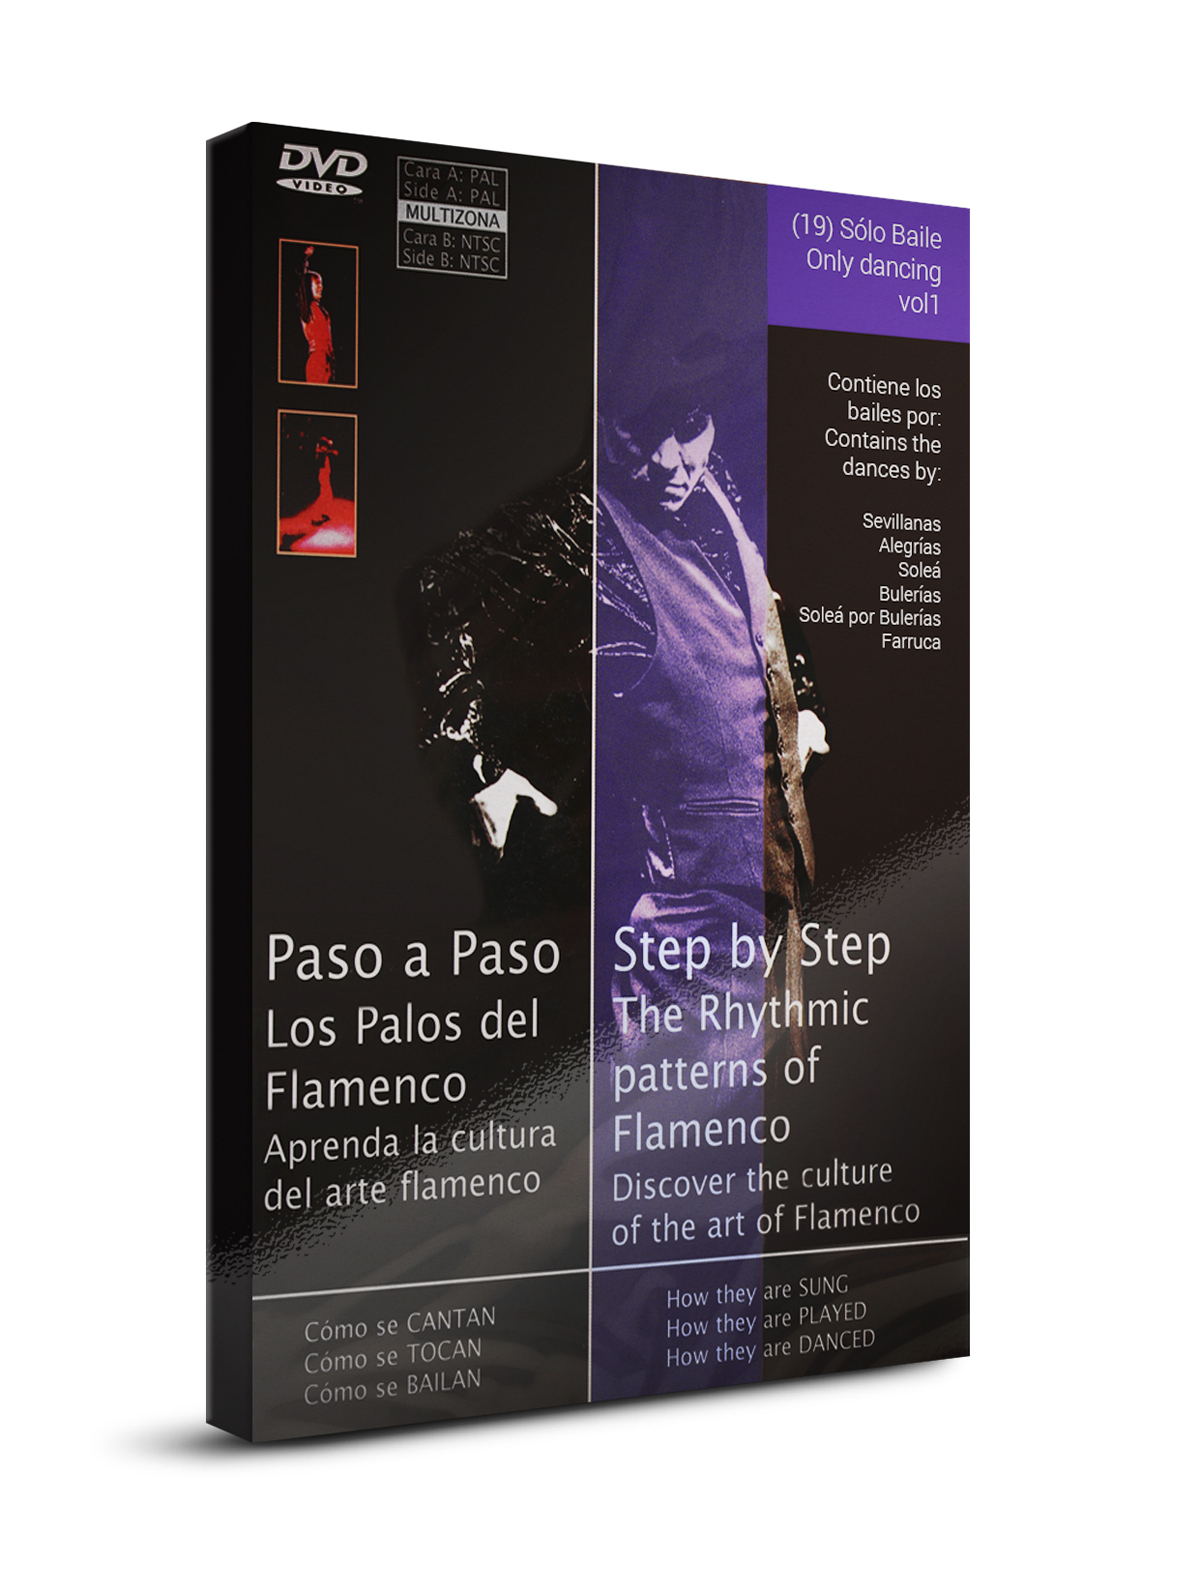 Flamenco dance classes Sólo baile DVD